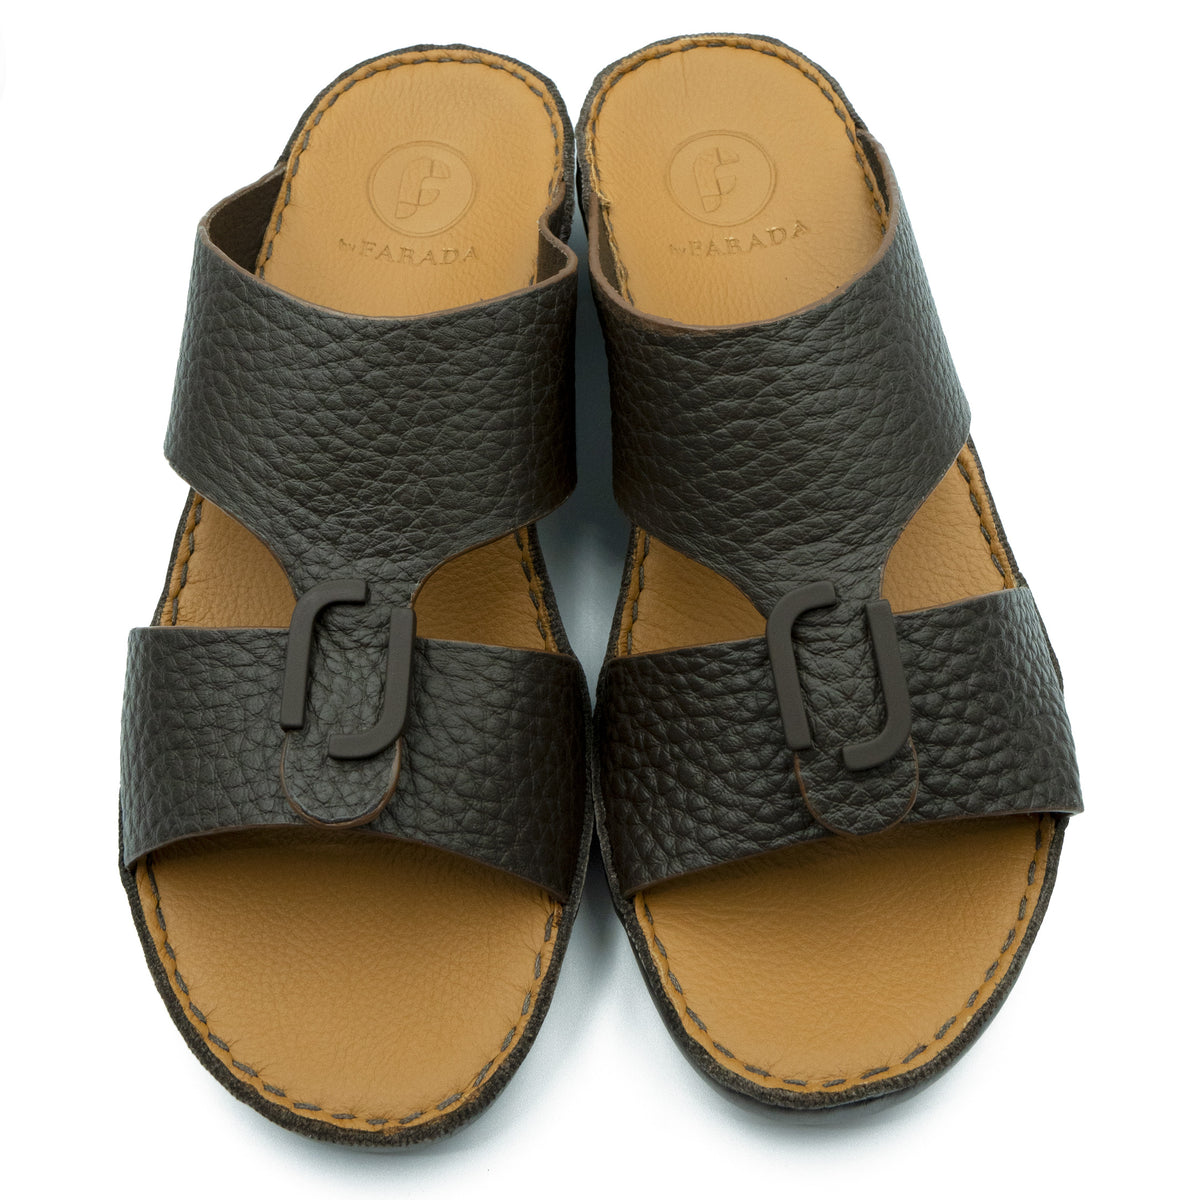 DAVINCI CAFE UNLINED HAMMERED CENTRE BUCKLE ARABIC SANDAL (317-80)